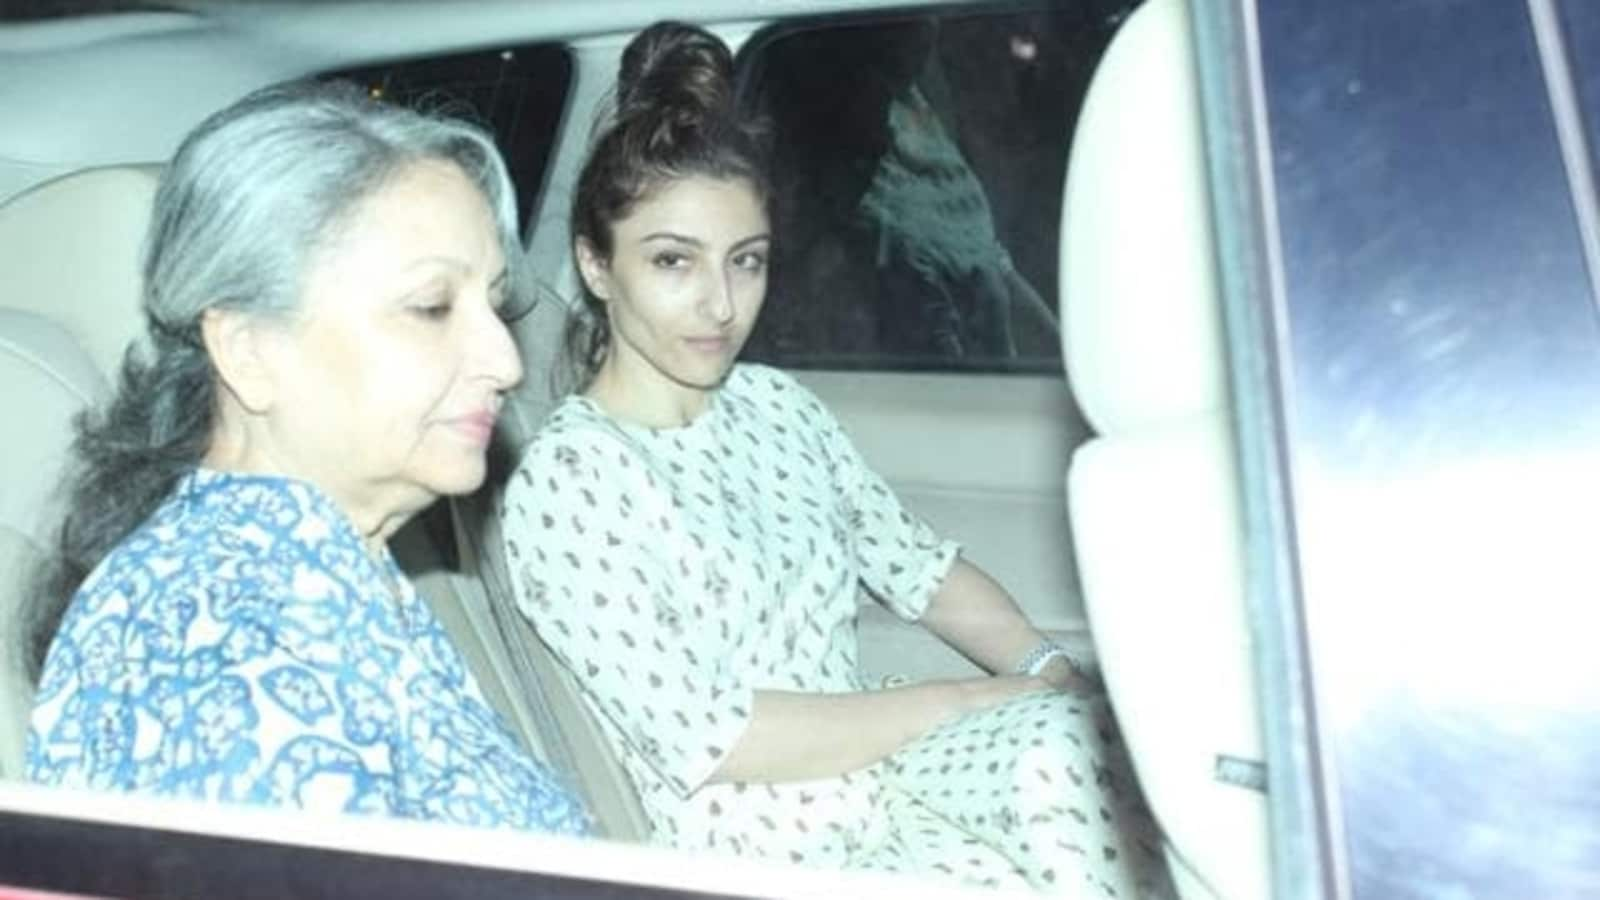 Soha Ali Khan and mother Sharmila Tagore to auction personal closet items for charity - Hindustan Times